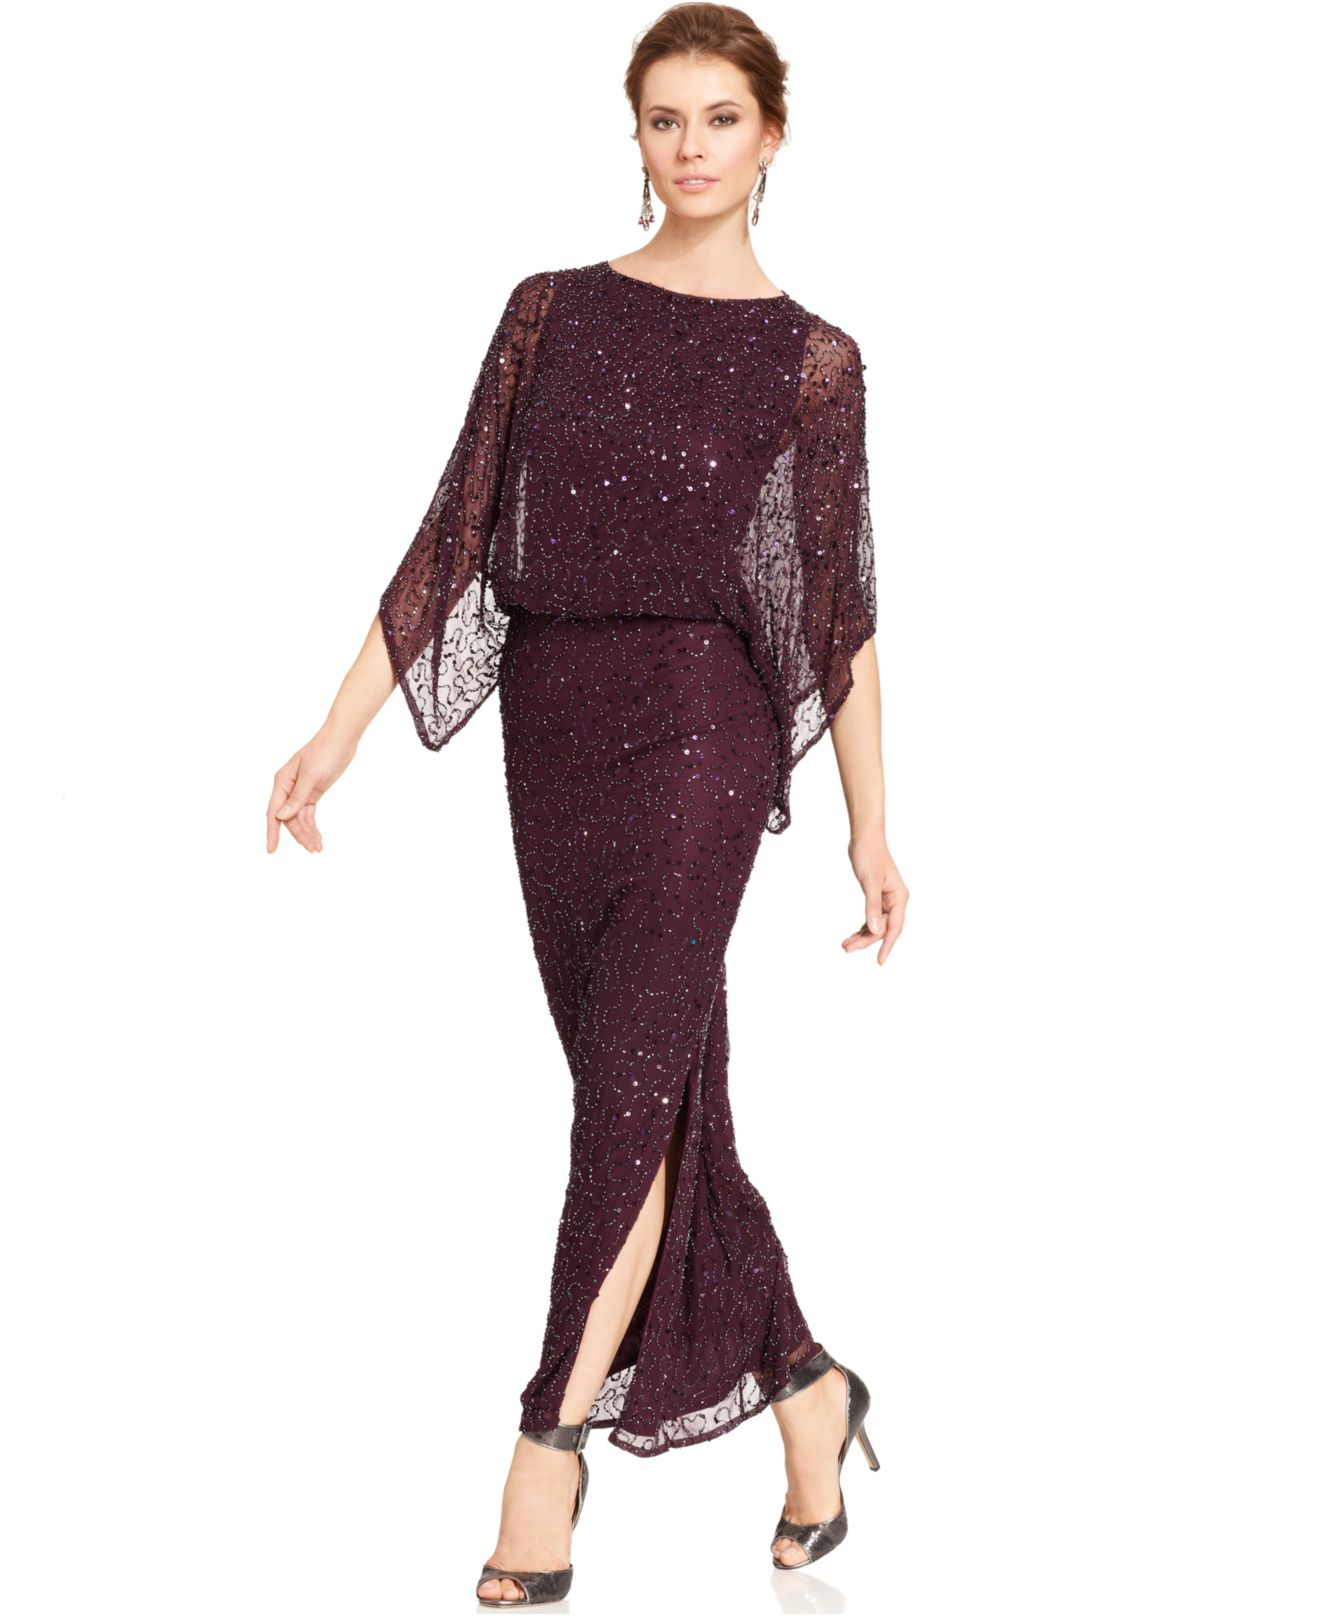 Set moreover Gold Dresses as well Dsquared2 Zipped Nappa Leather Long Dress Black moreover Patra Kimono Sleeve Beaded Blouson Gown Plum likewise Alex Evenings Long Off The Shoulder Stretch Taffeta Dress Red. on oscar de la renta dresses on sale